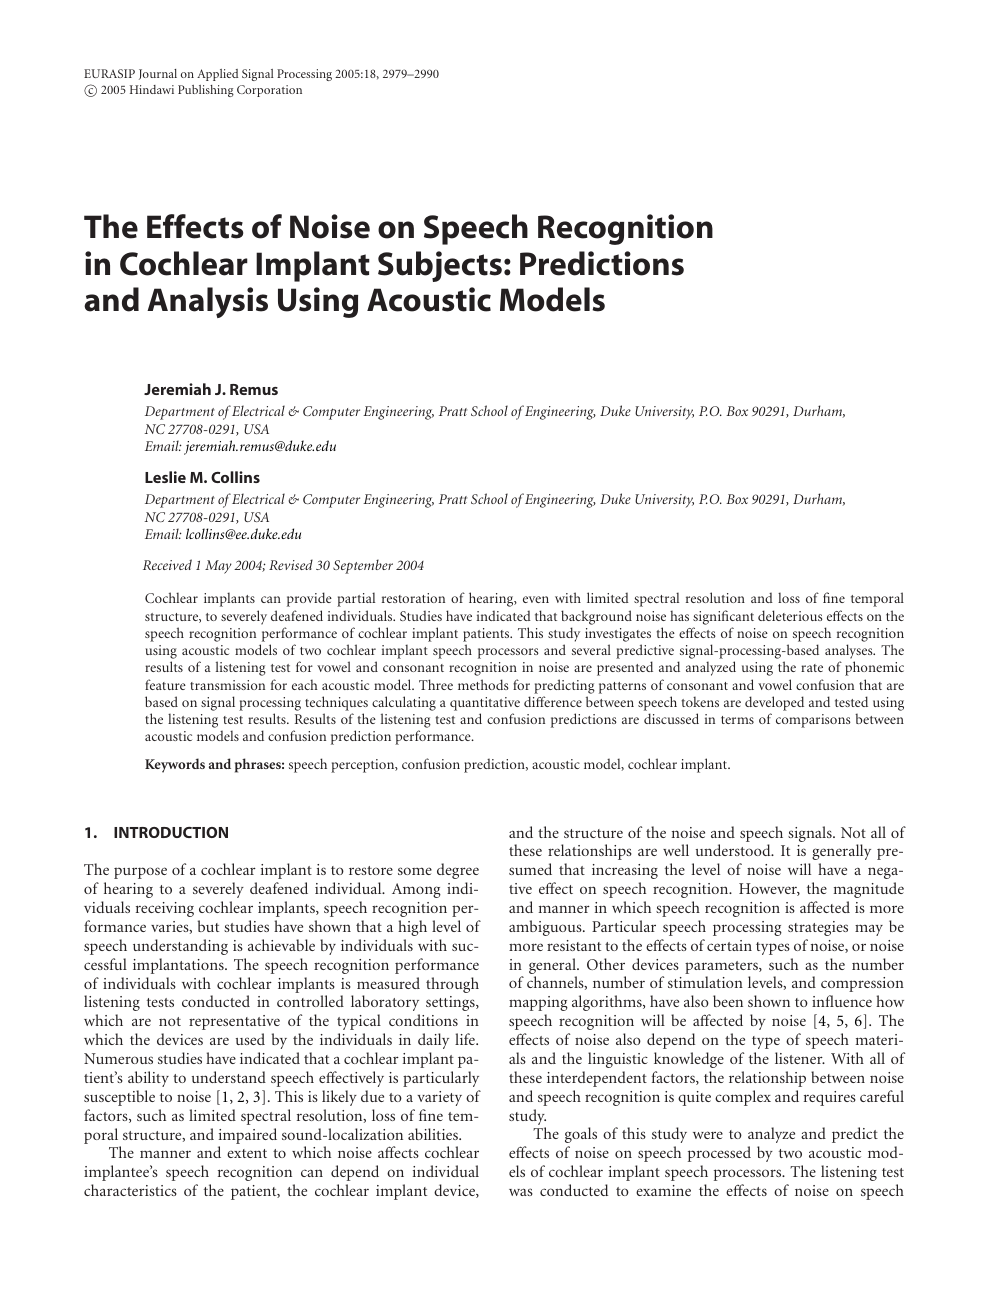 The Effects of Noise on Speech Recognition in Cochlear Implant